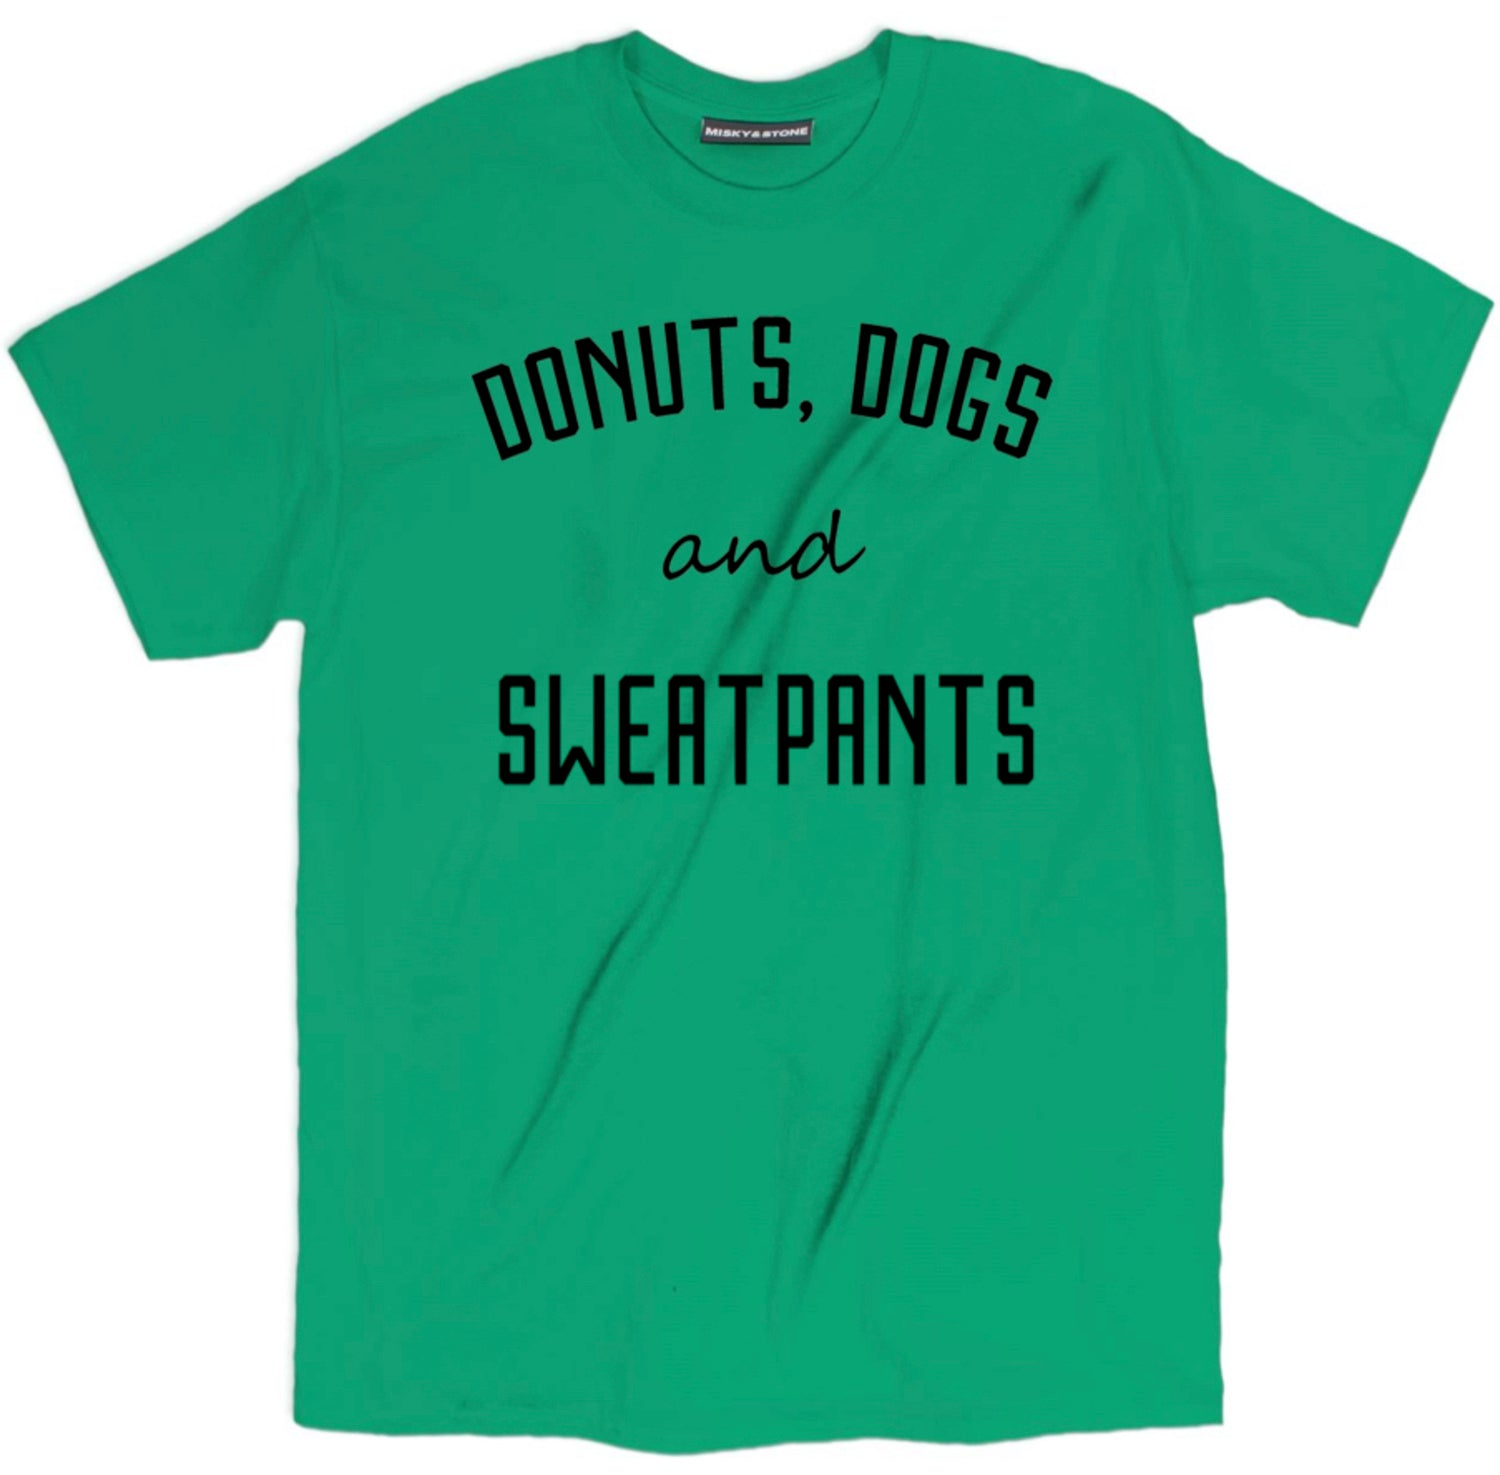 Donuts Dogs Shirt